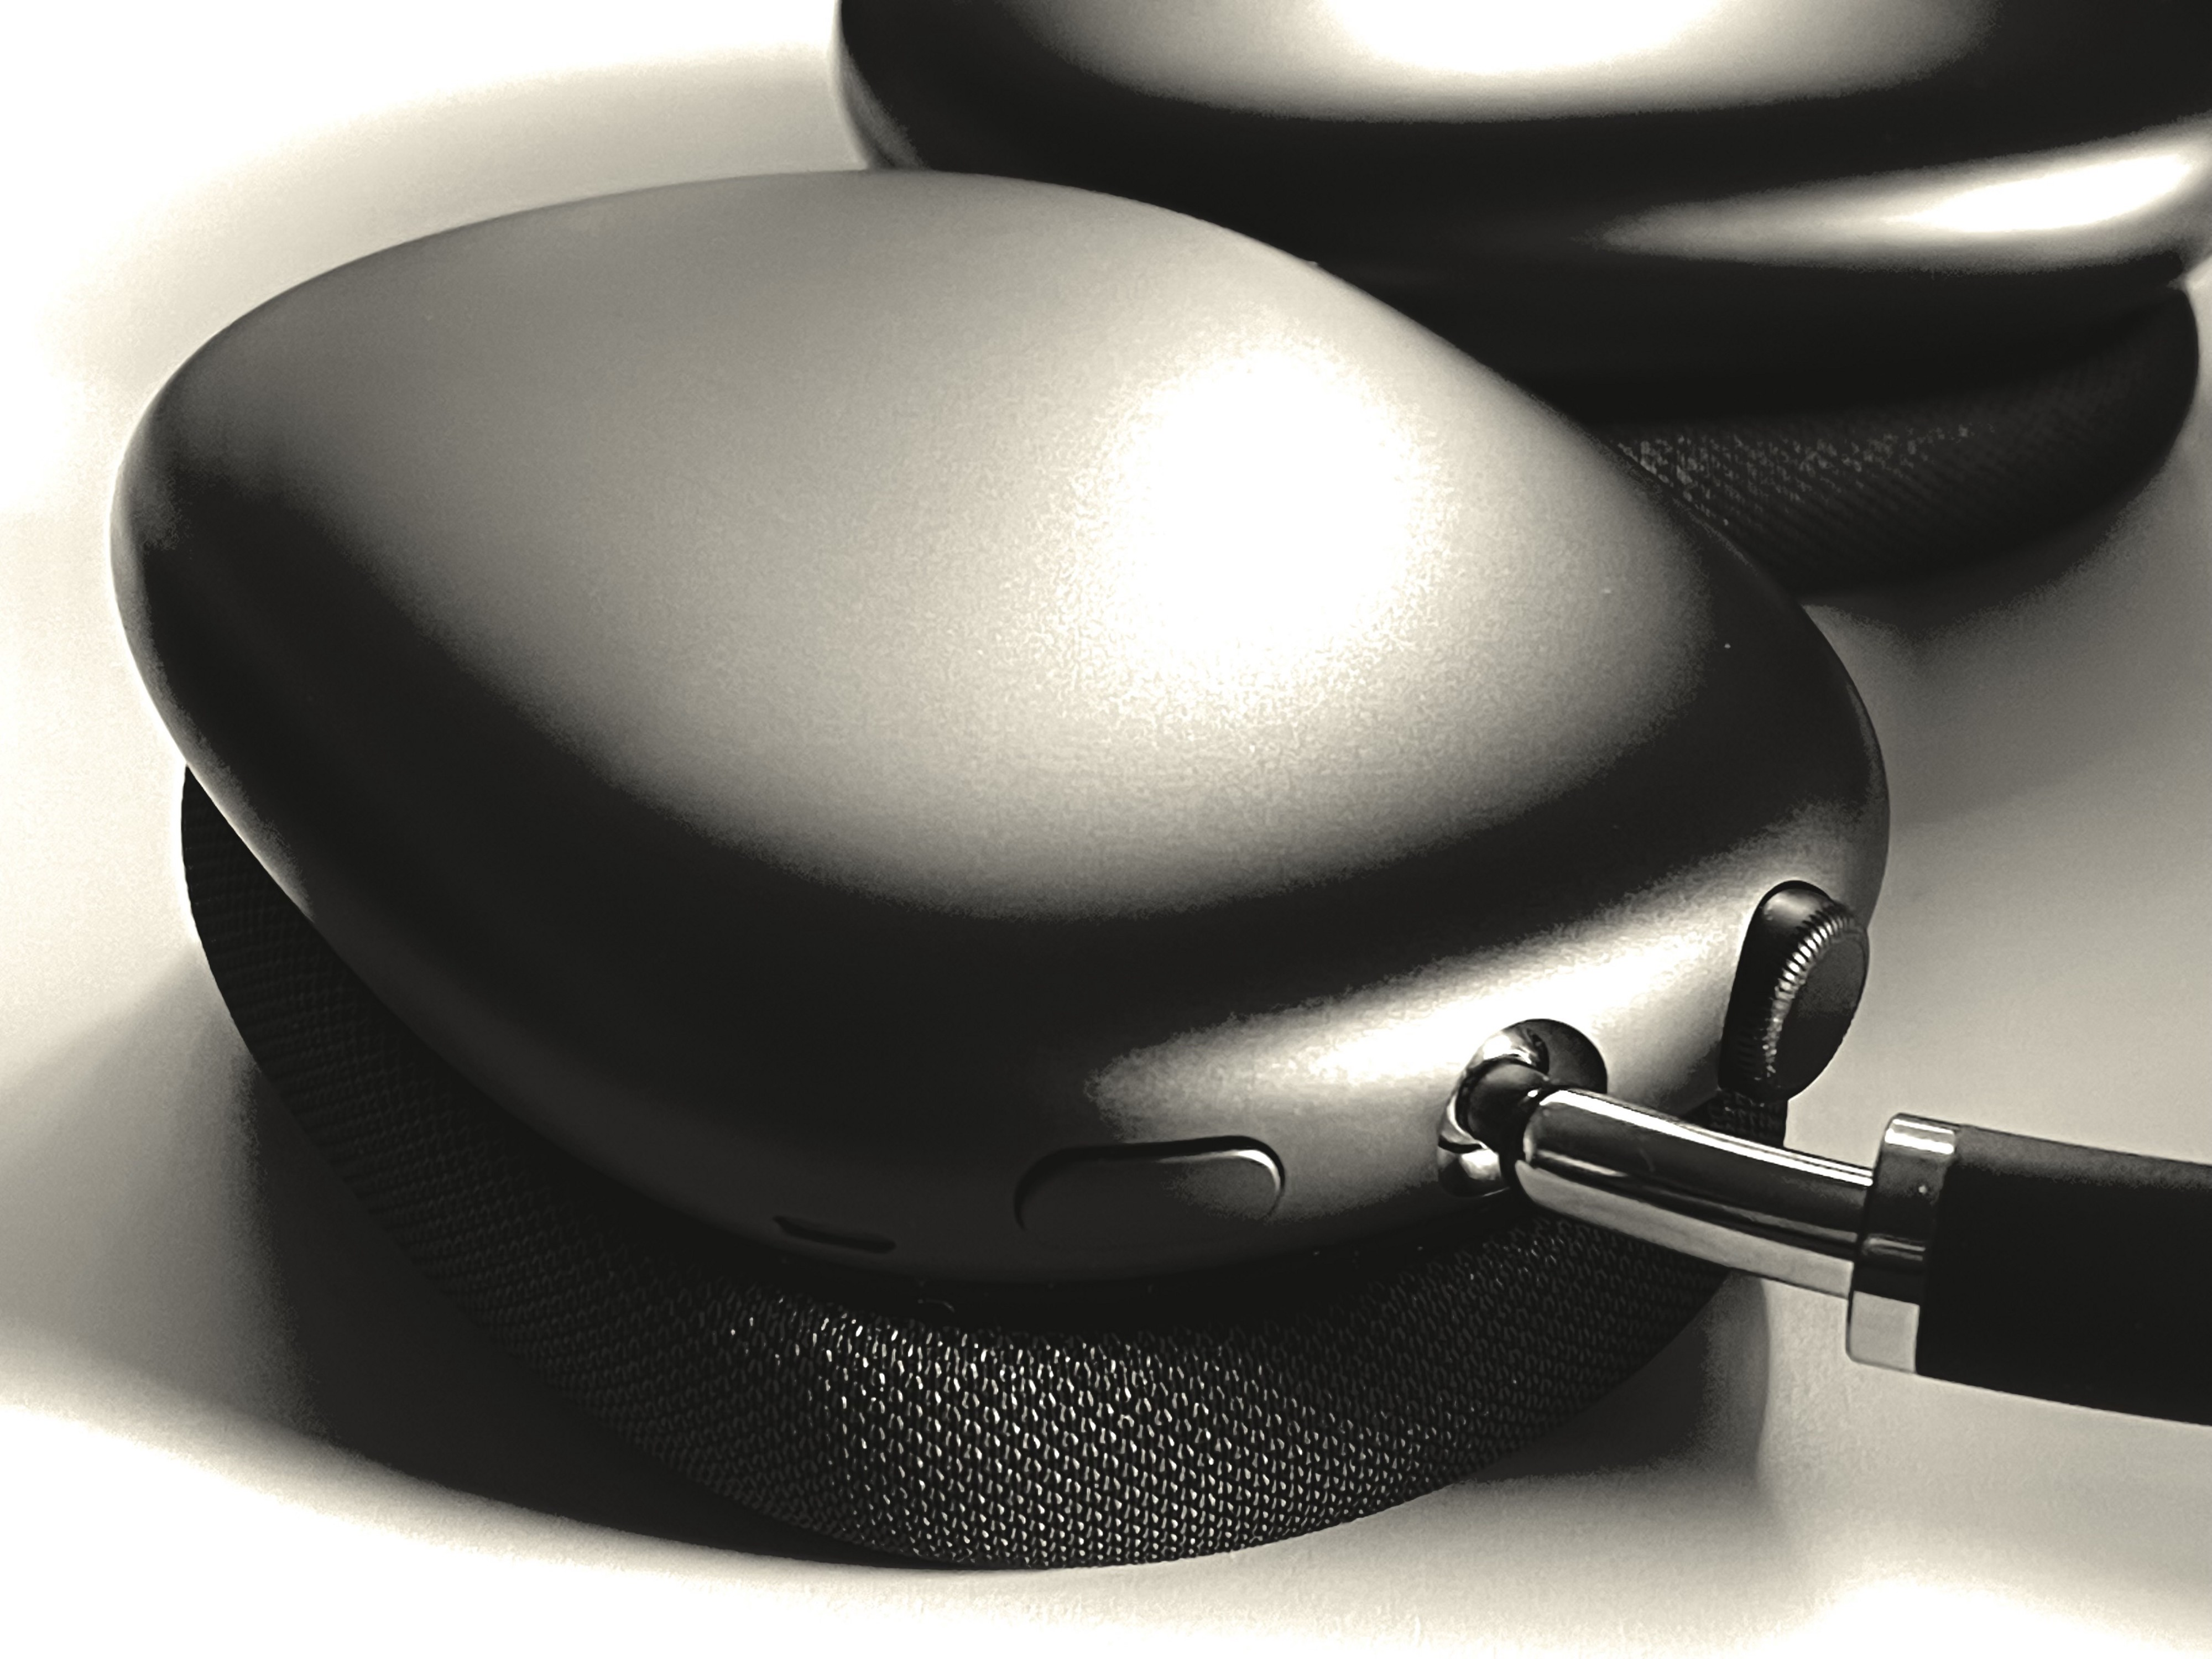 AirPods Max Ear Cup close up.